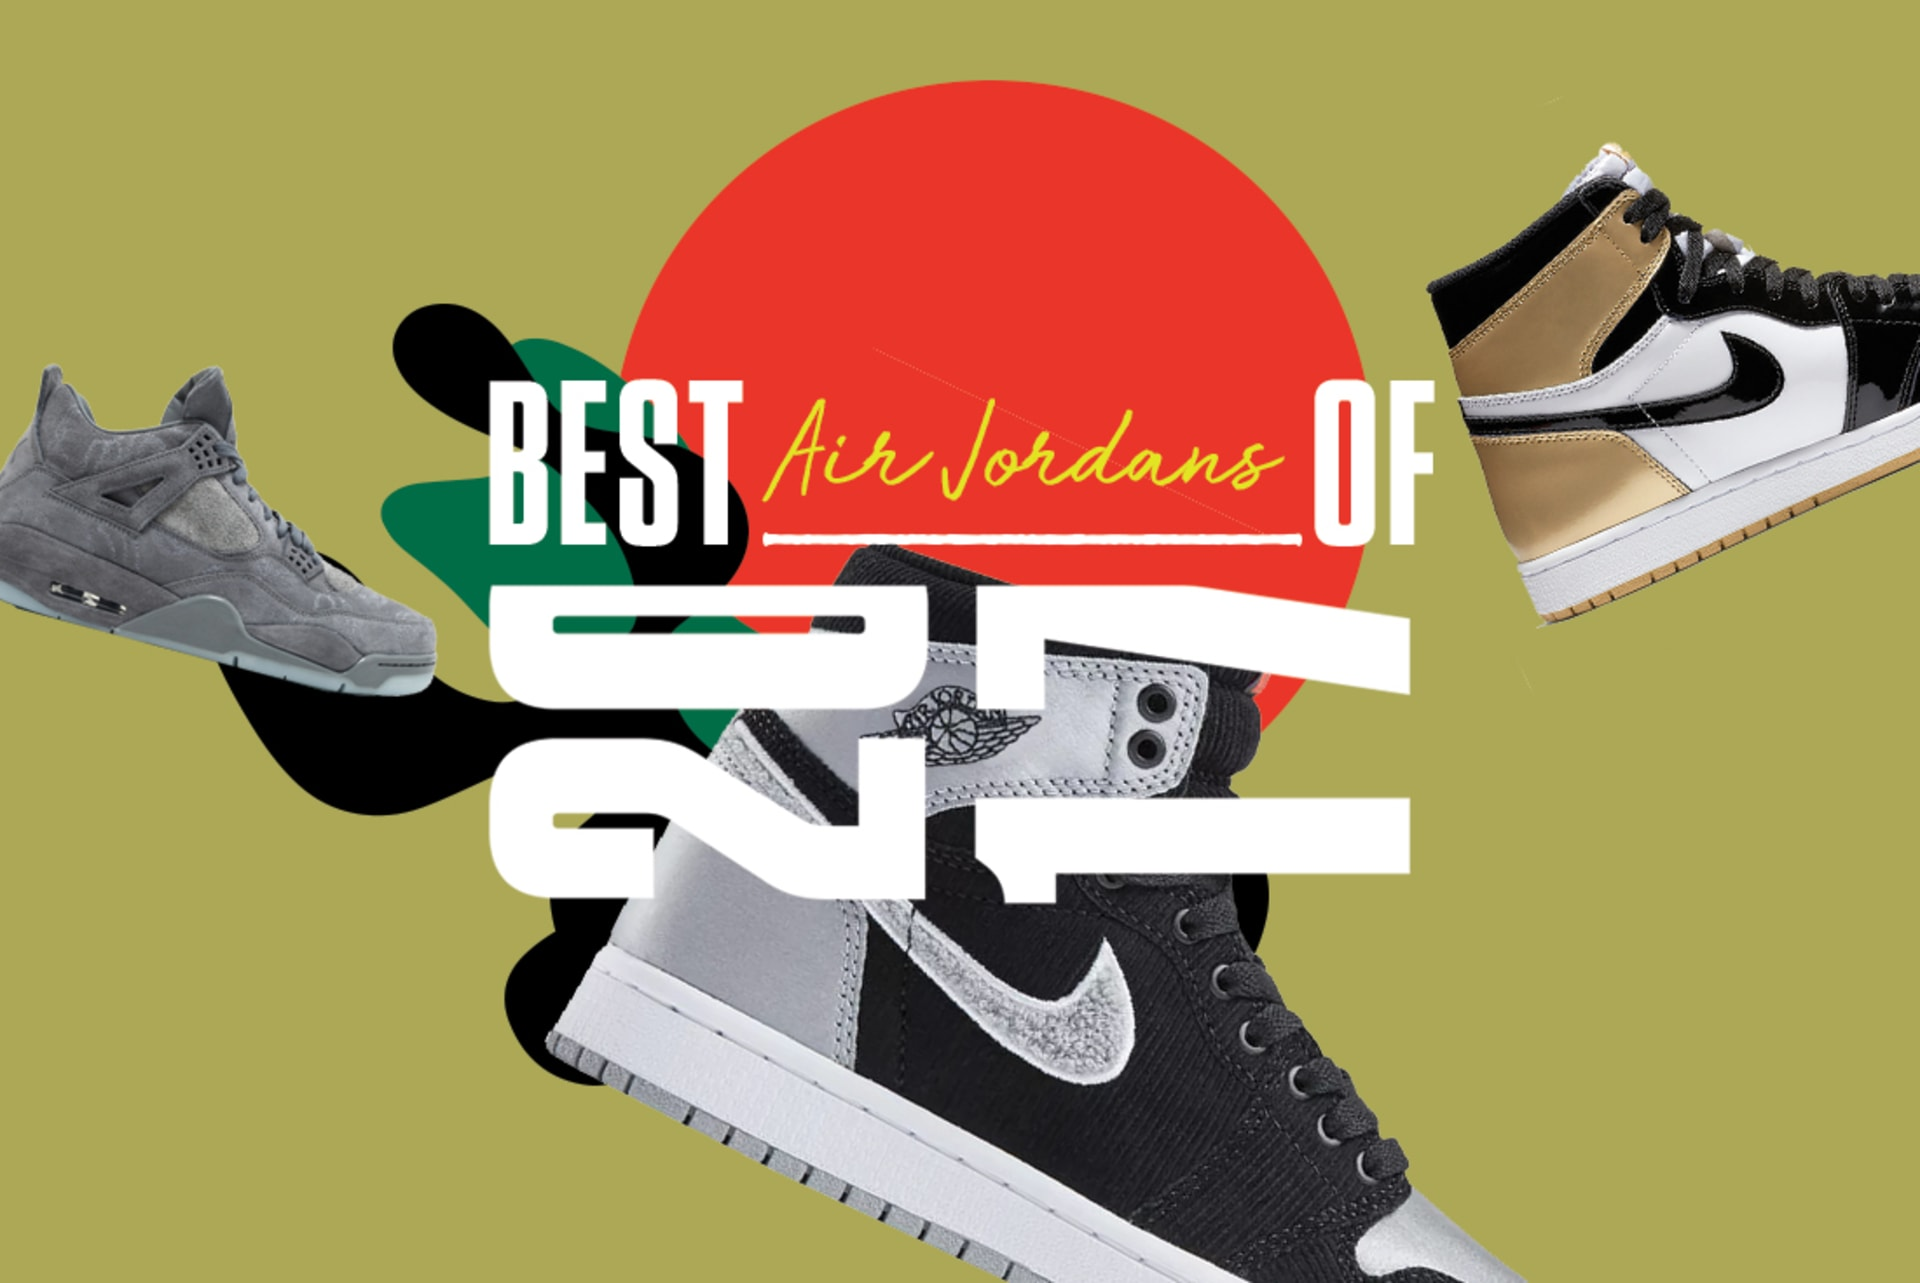 on sale 885e2 a3543 Best Air Jordans 2017